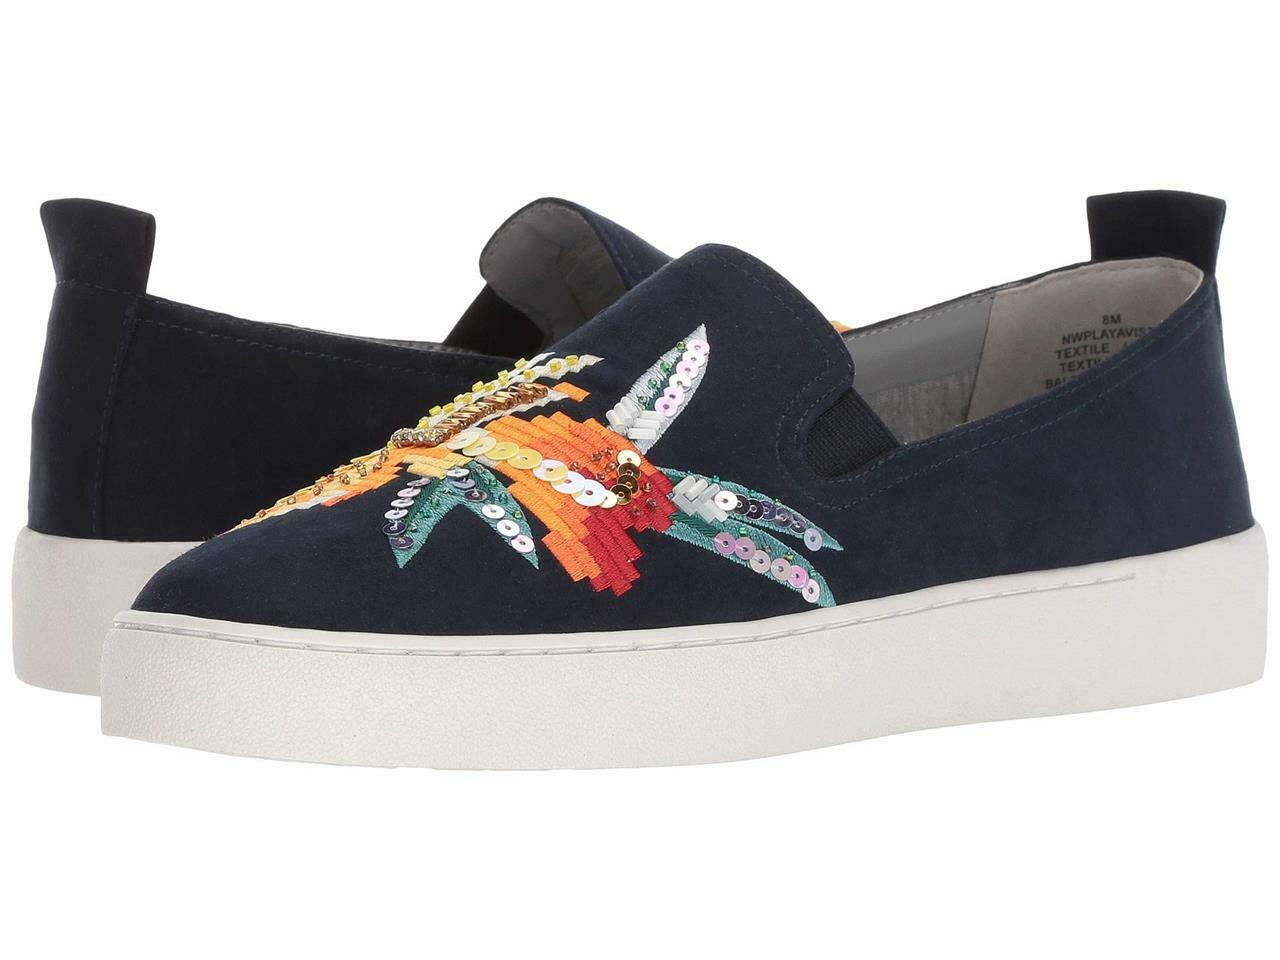 Nine West Playavista Embroidered Sequins Beads Navy Suede Slip-On shoes Wms NEW